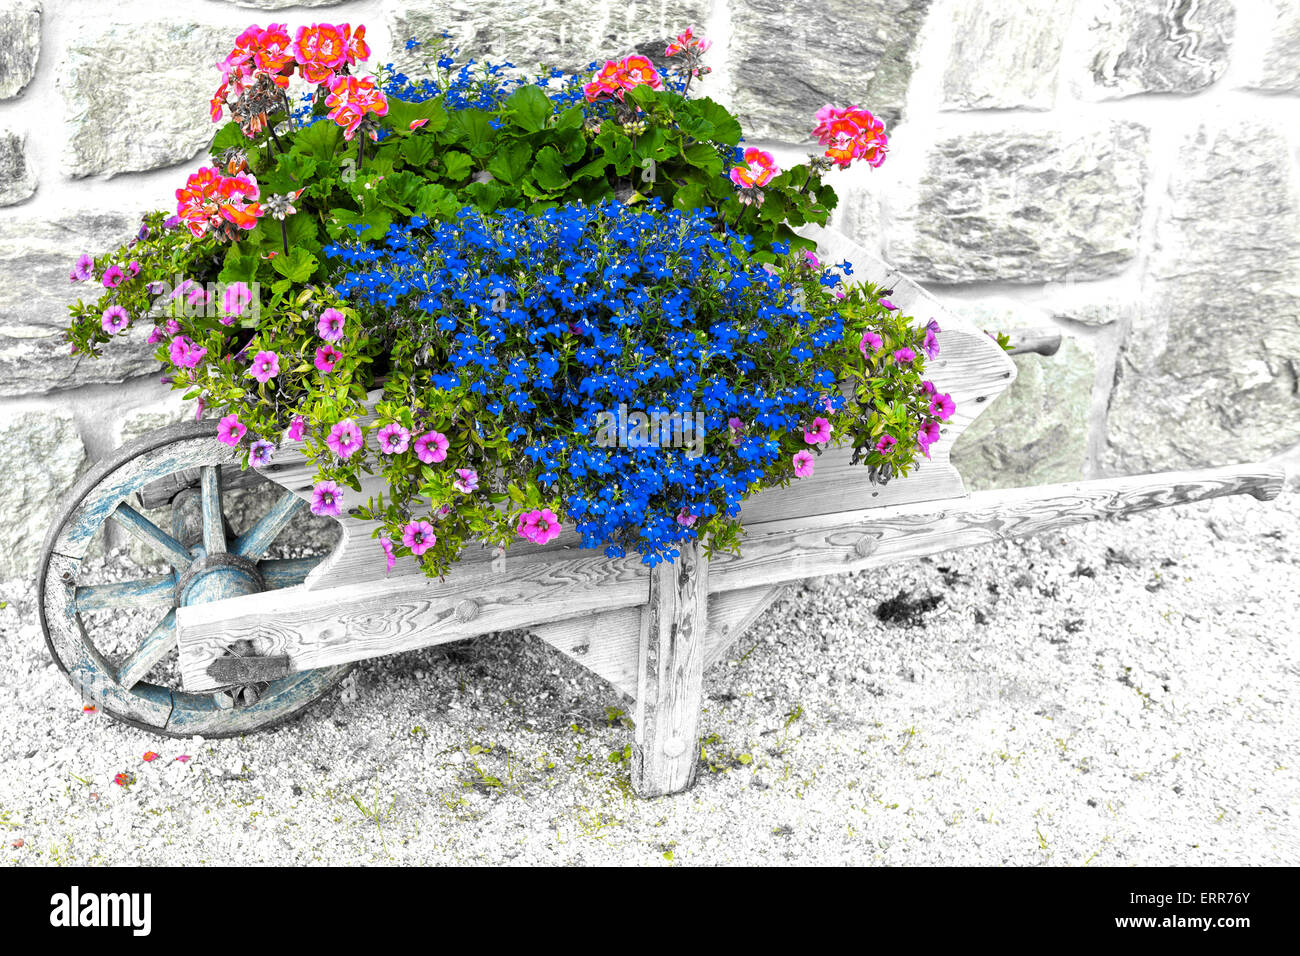 colored flowers on the wheelbarrow with stone wall background - Stock Image